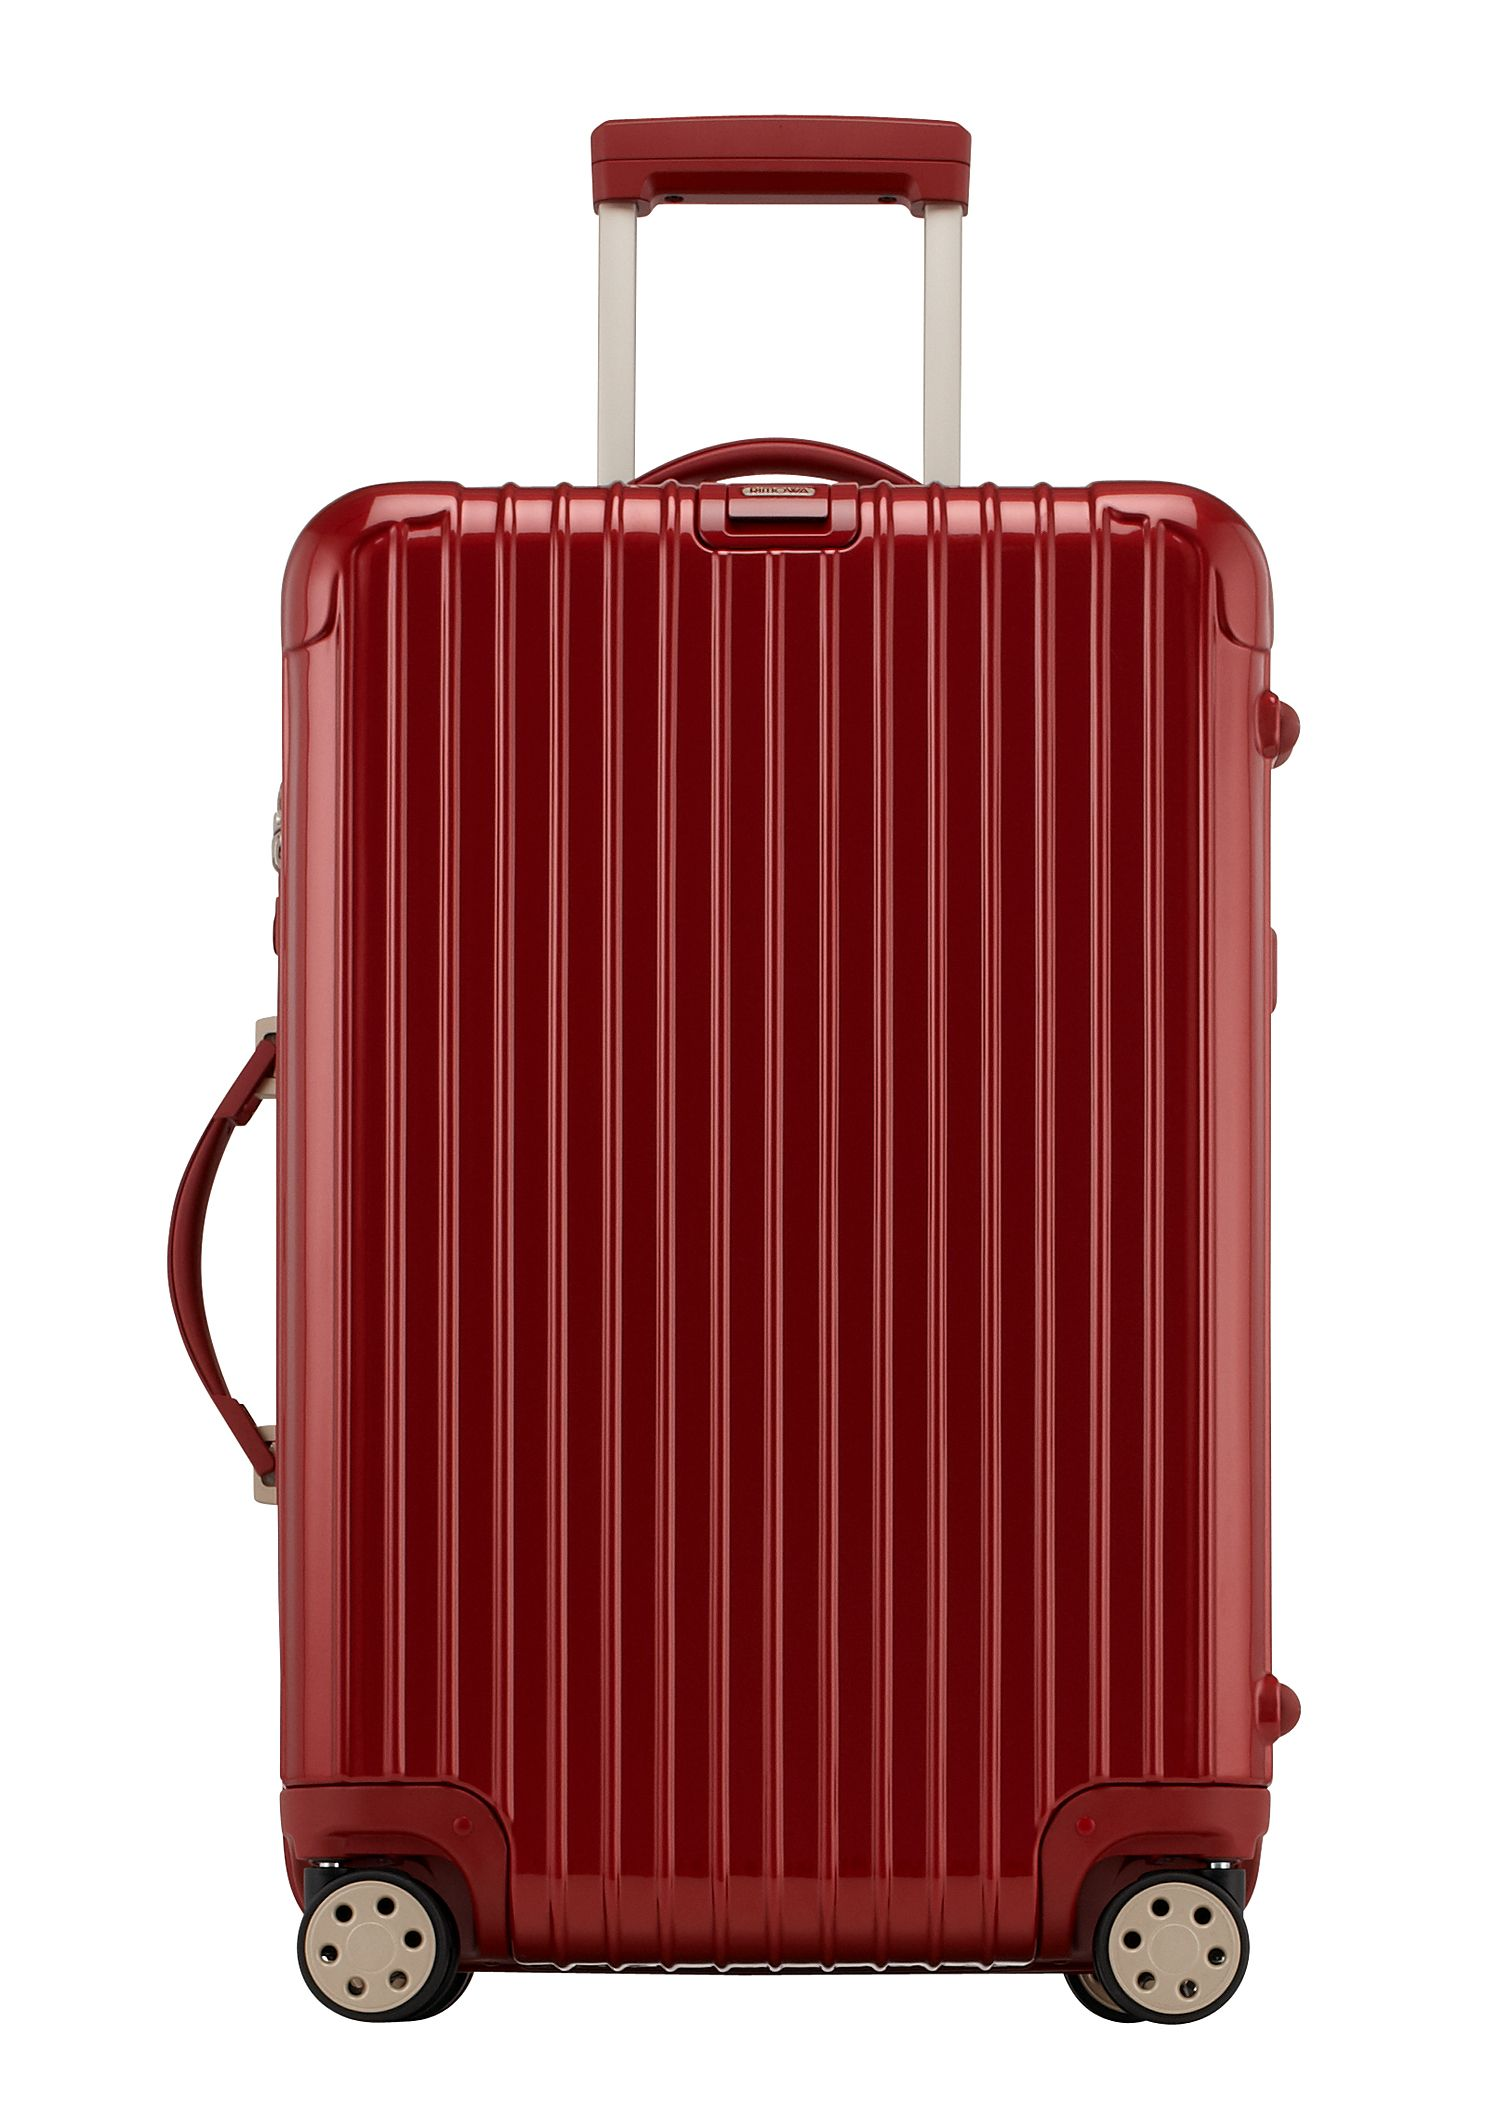 rimowa salsa deluxe multiwheel trolley 63 orientrot kofferexpress 24. Black Bedroom Furniture Sets. Home Design Ideas